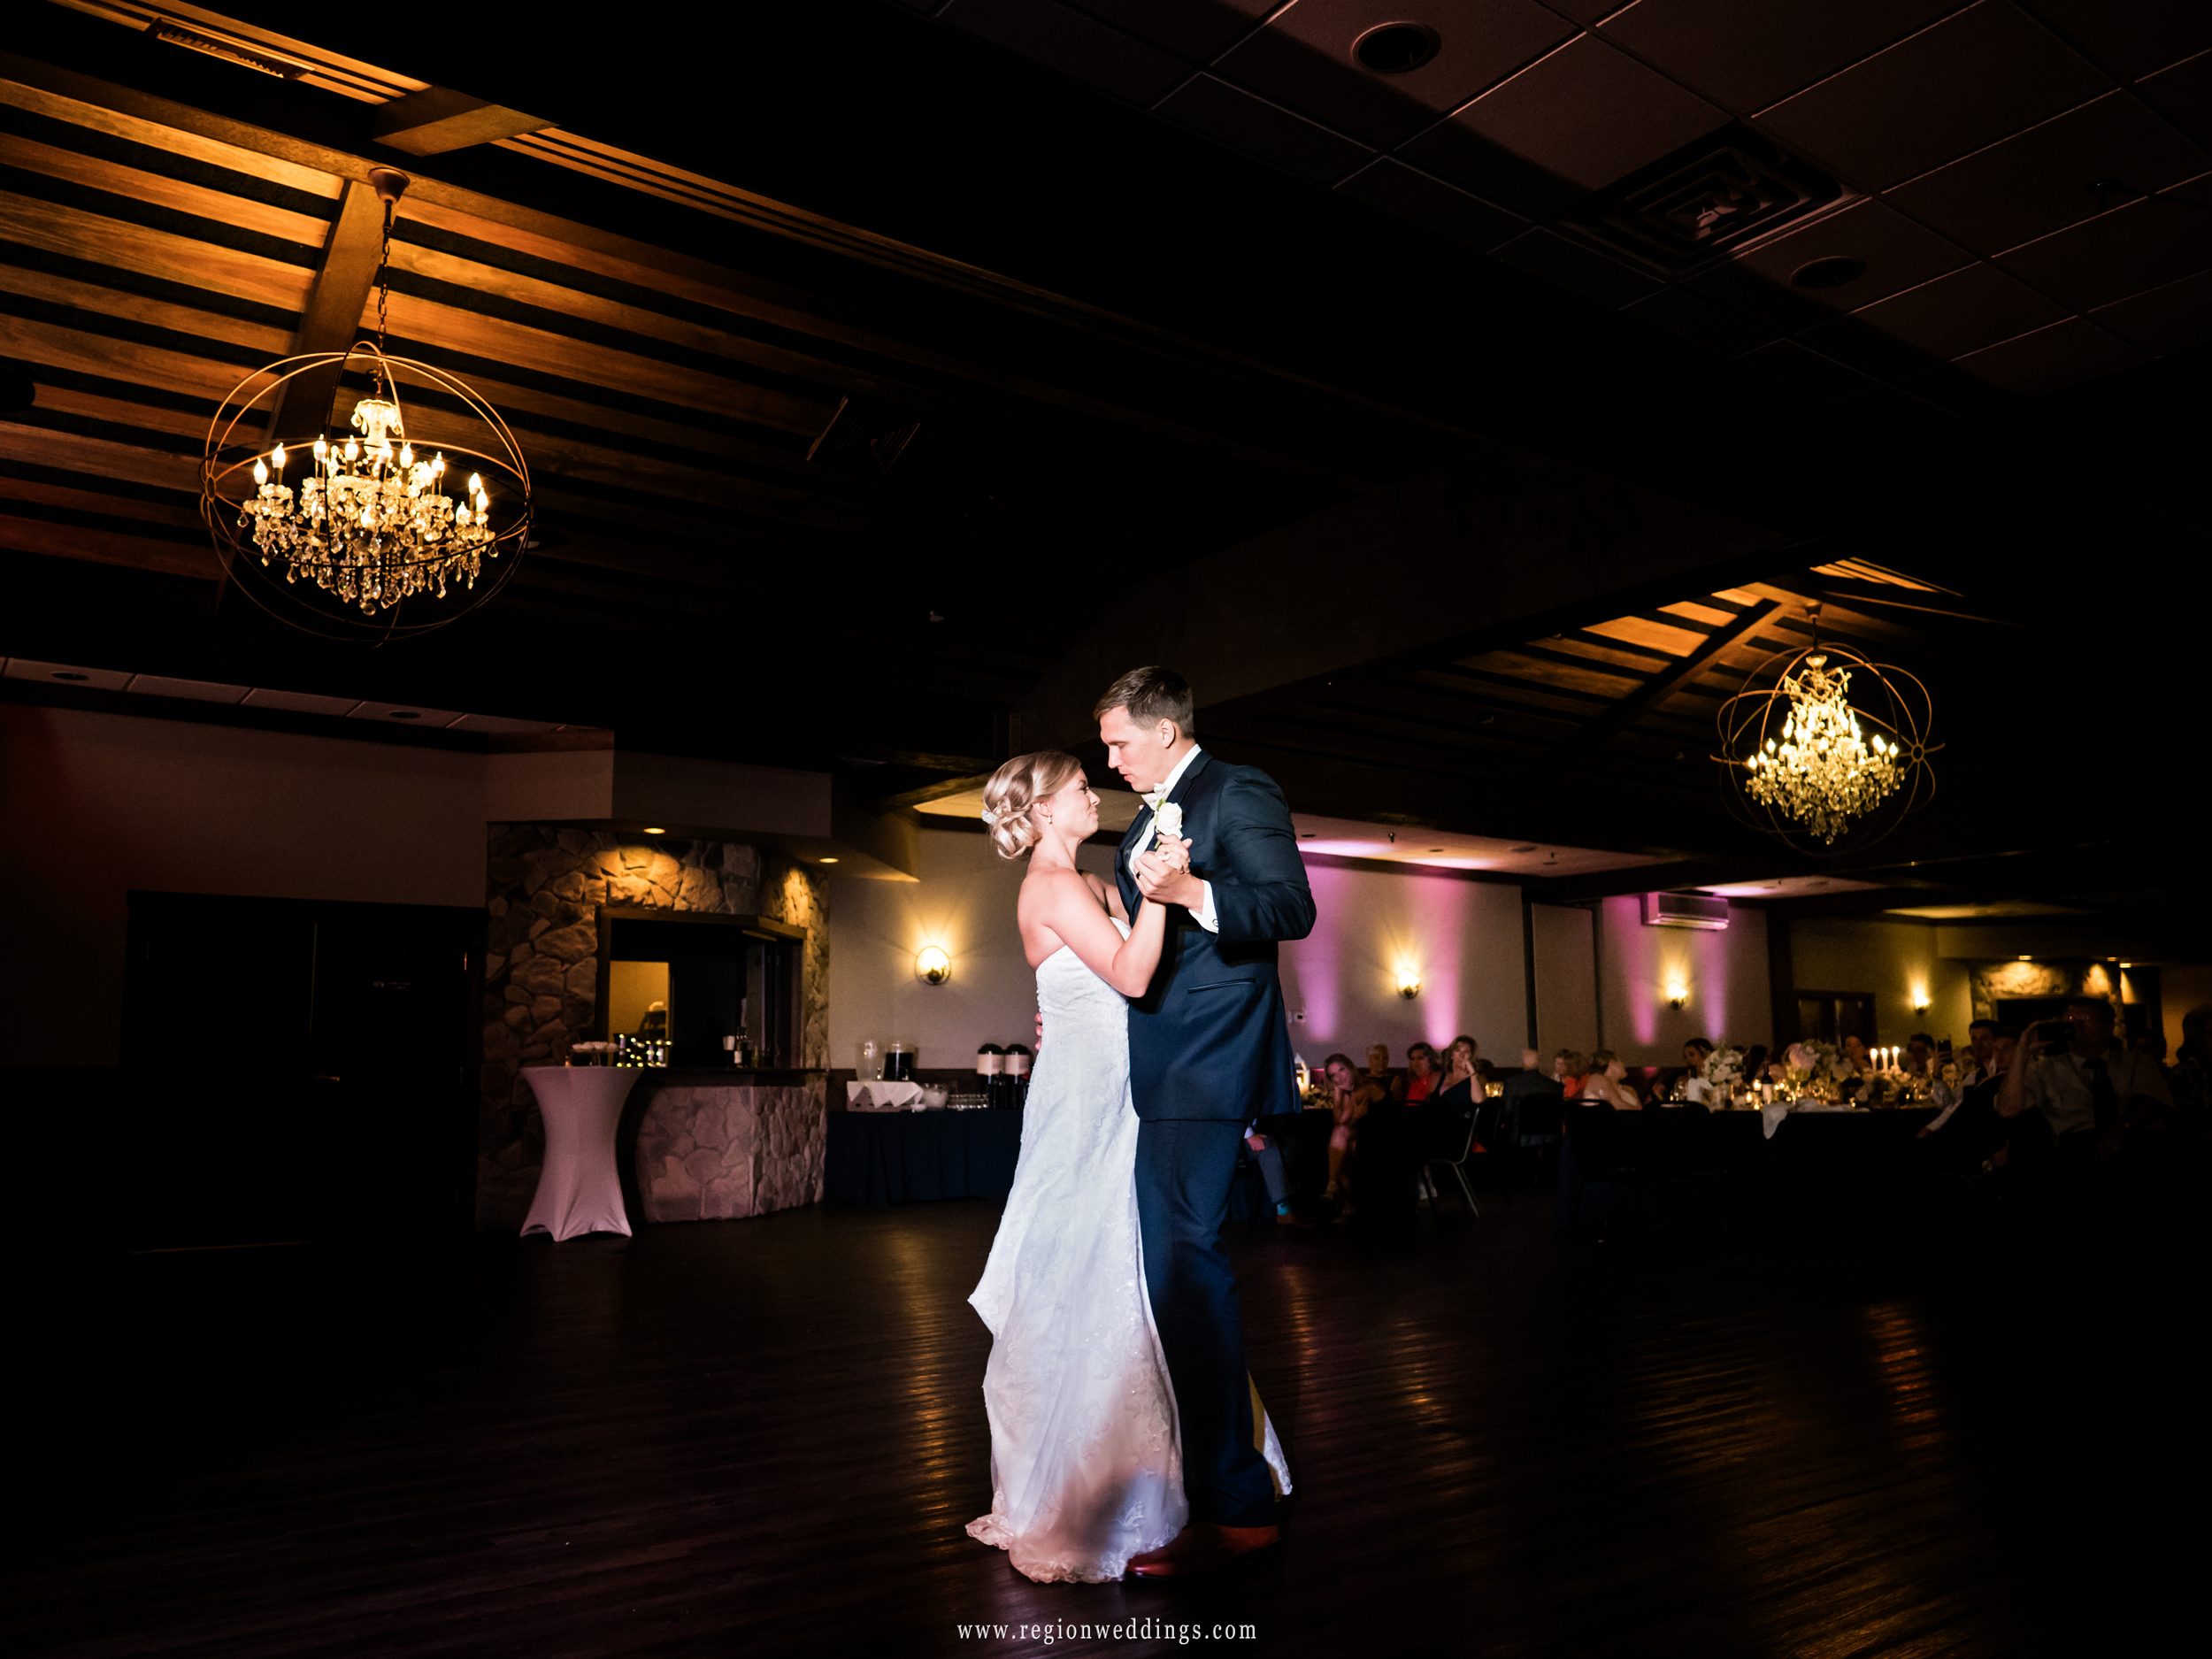 First dance for the bride and groom at The Market.